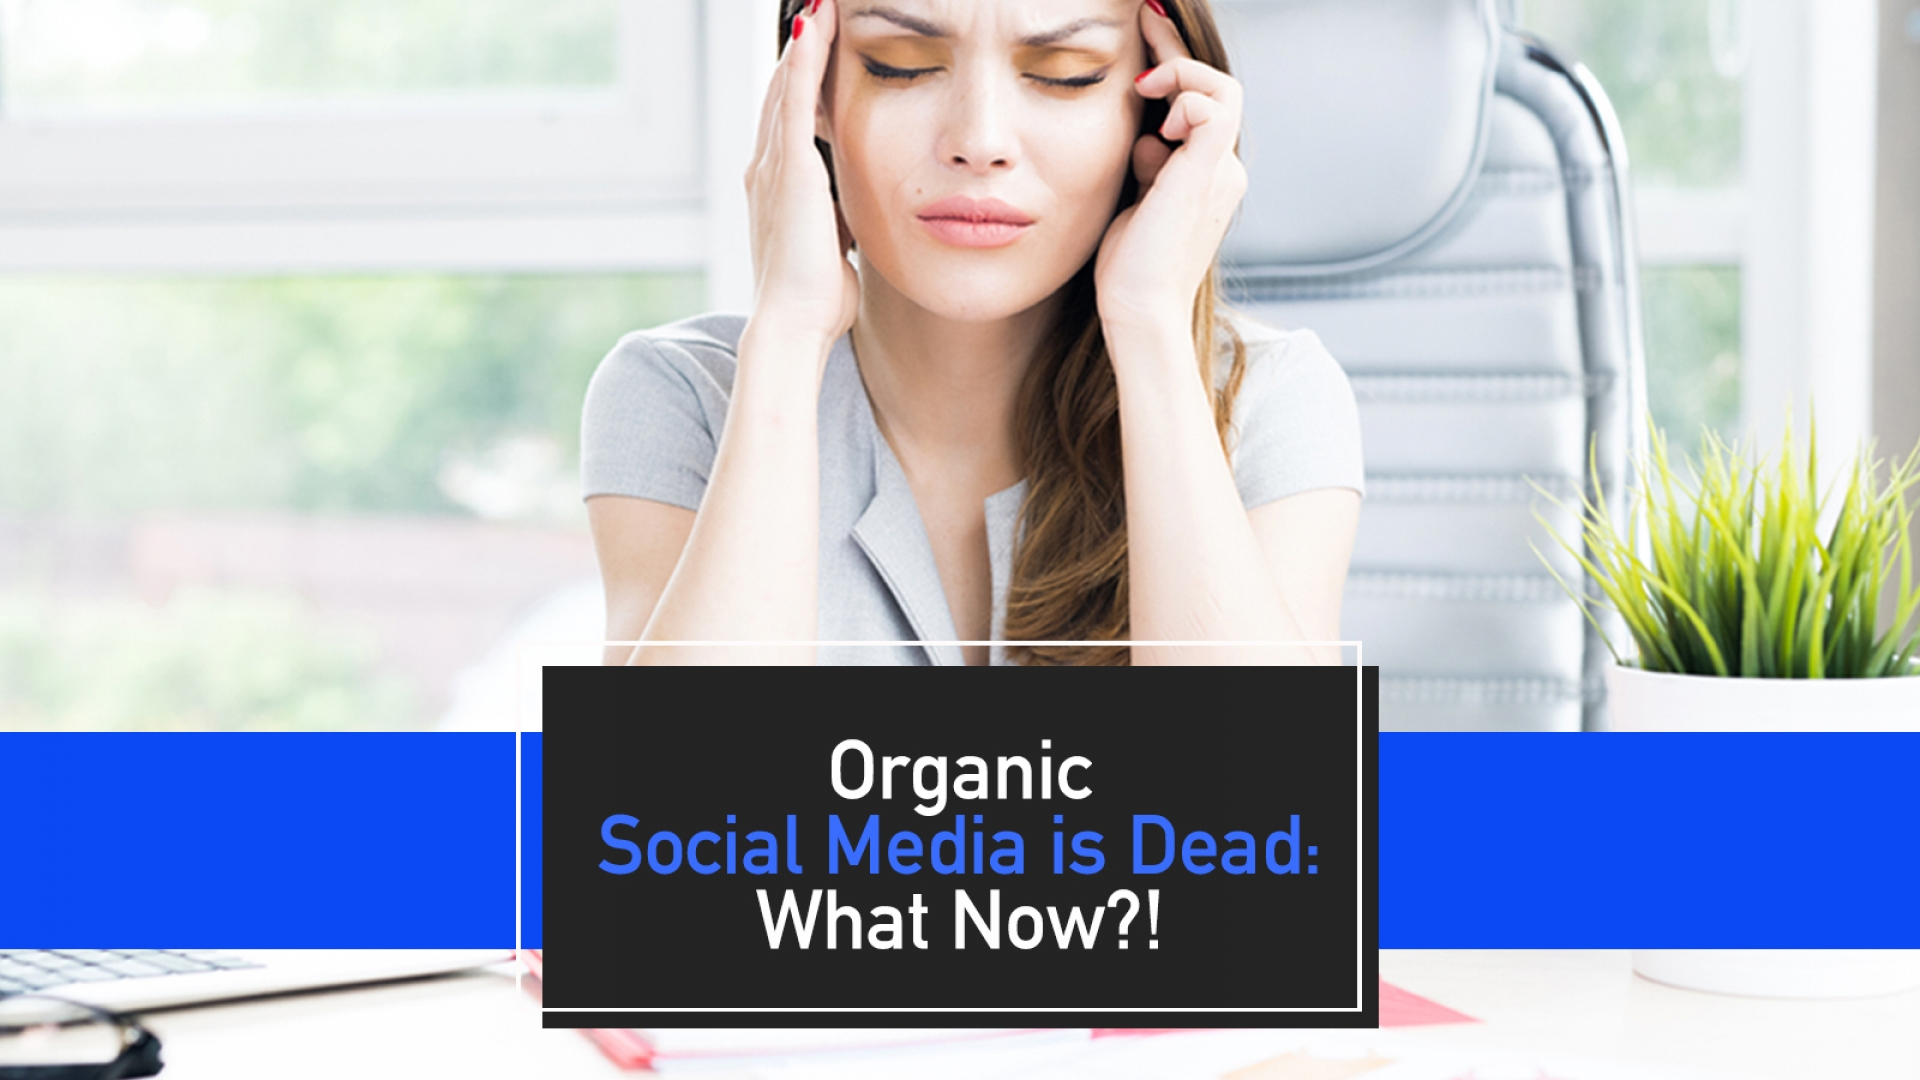 Organic Social Media is Dead – What Now!?